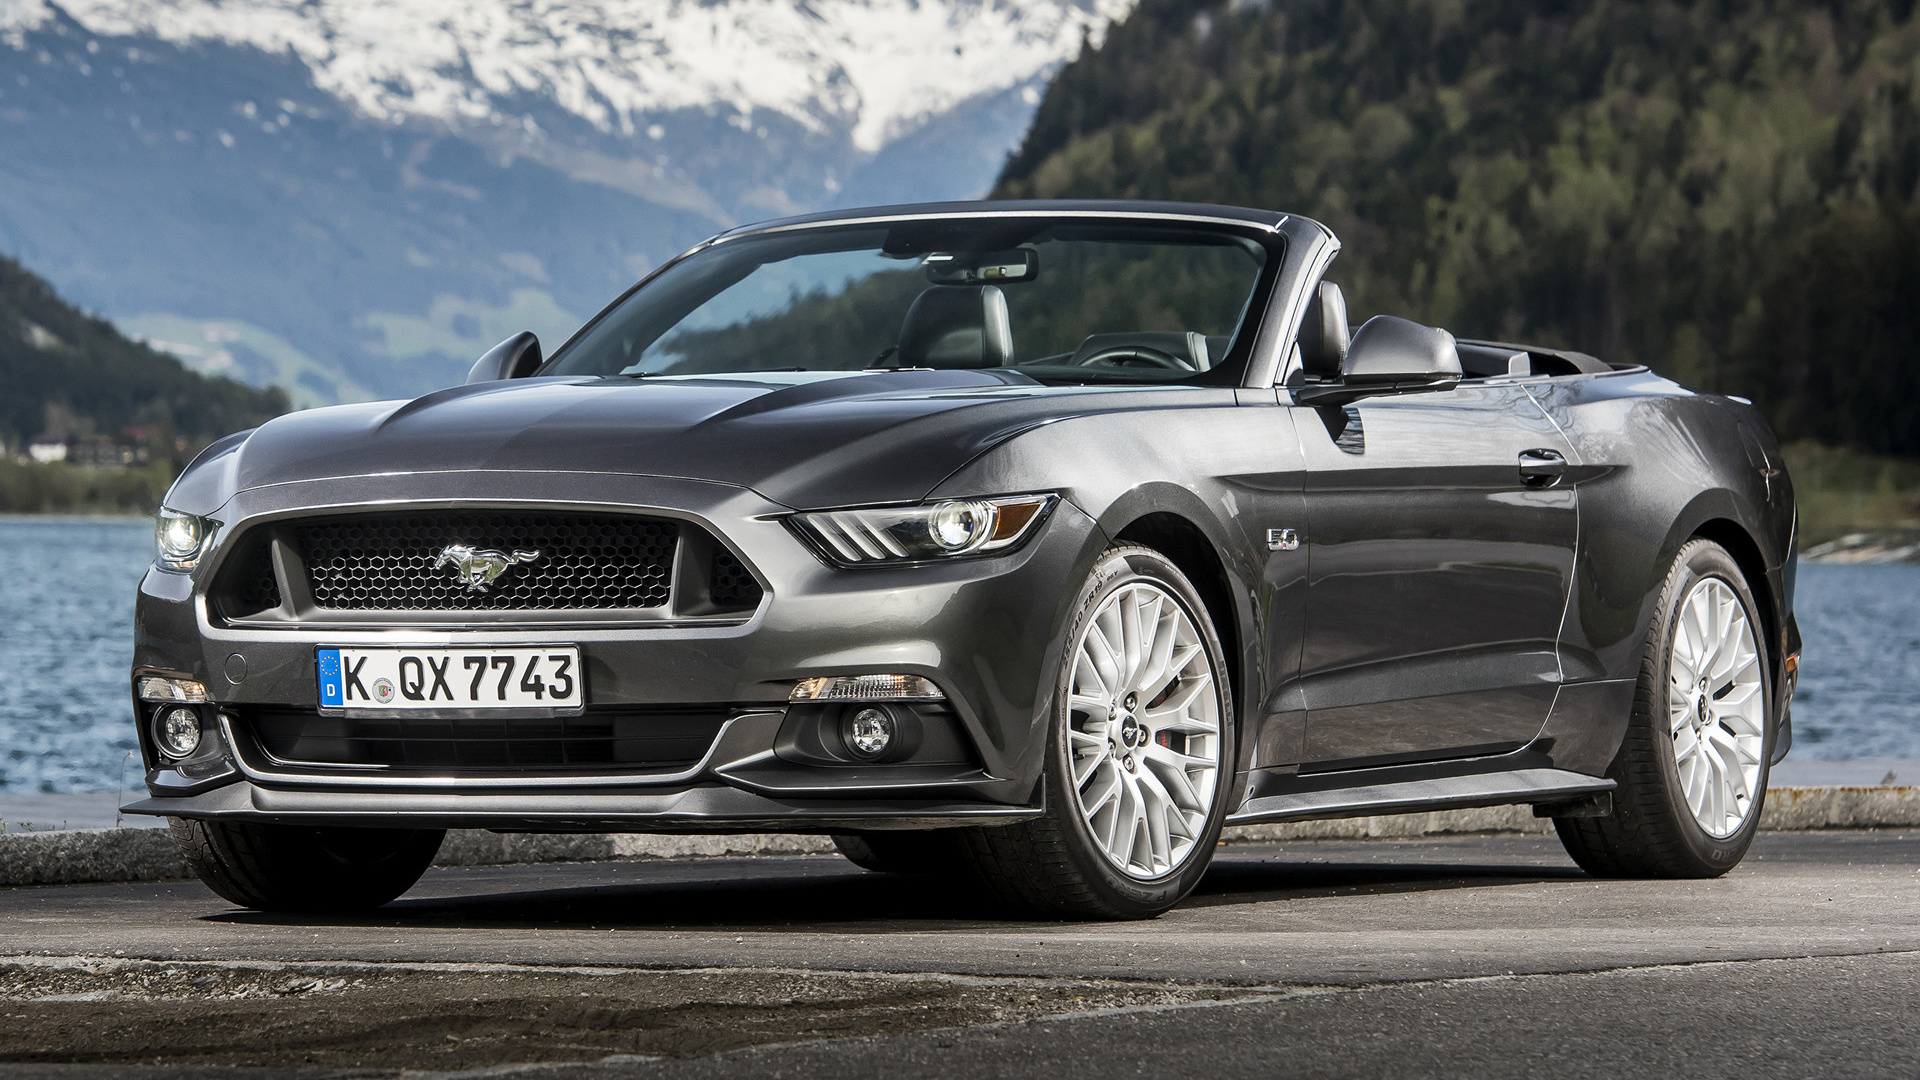 2015 Ford Mustang Gt Convertible Eu Wallpapers And Hd